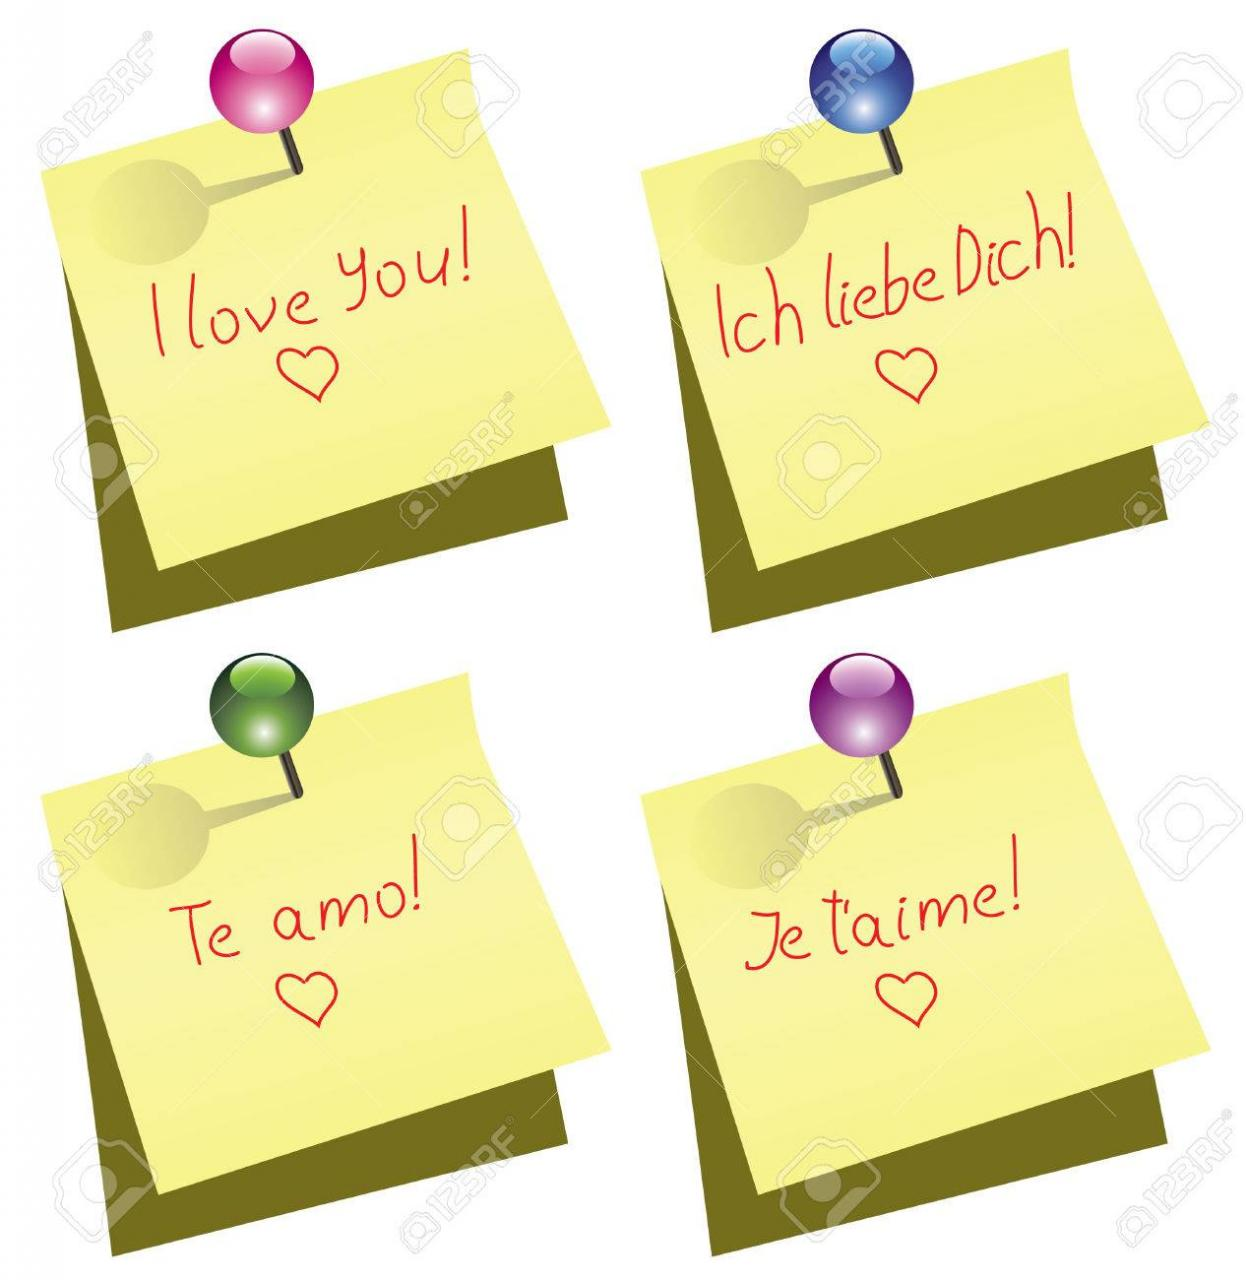 Vector Yellow Paper Notes With Push Pin And I Love You Words In English German Spanish And French